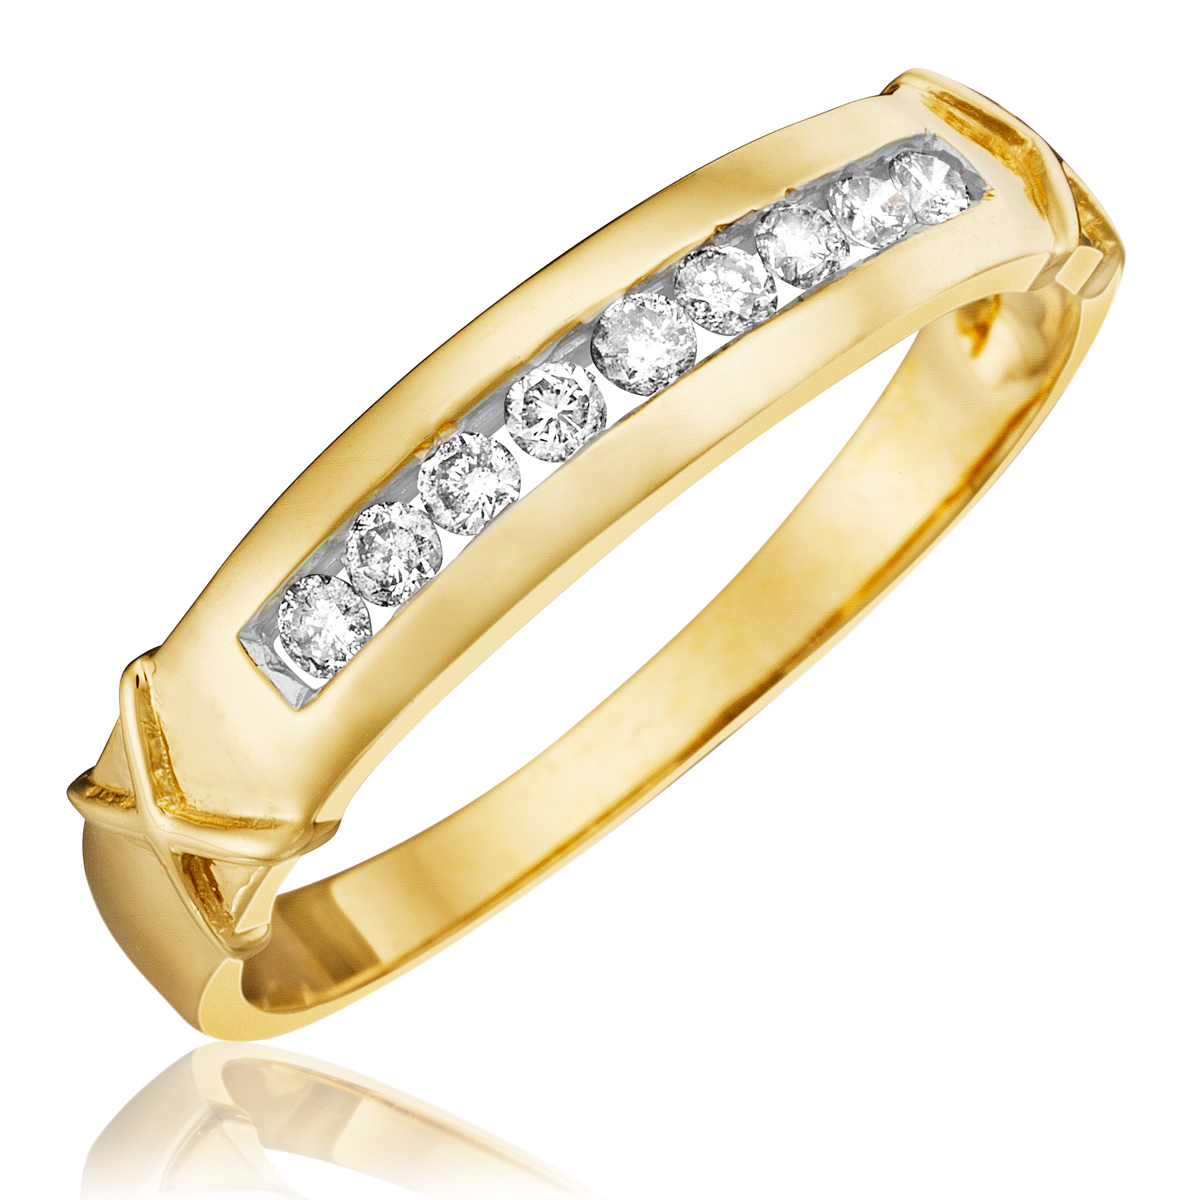 Gold 14K Yellow Gold Gold Purity Is Measured In Karats The Purest Form Of Gold Is 24K The